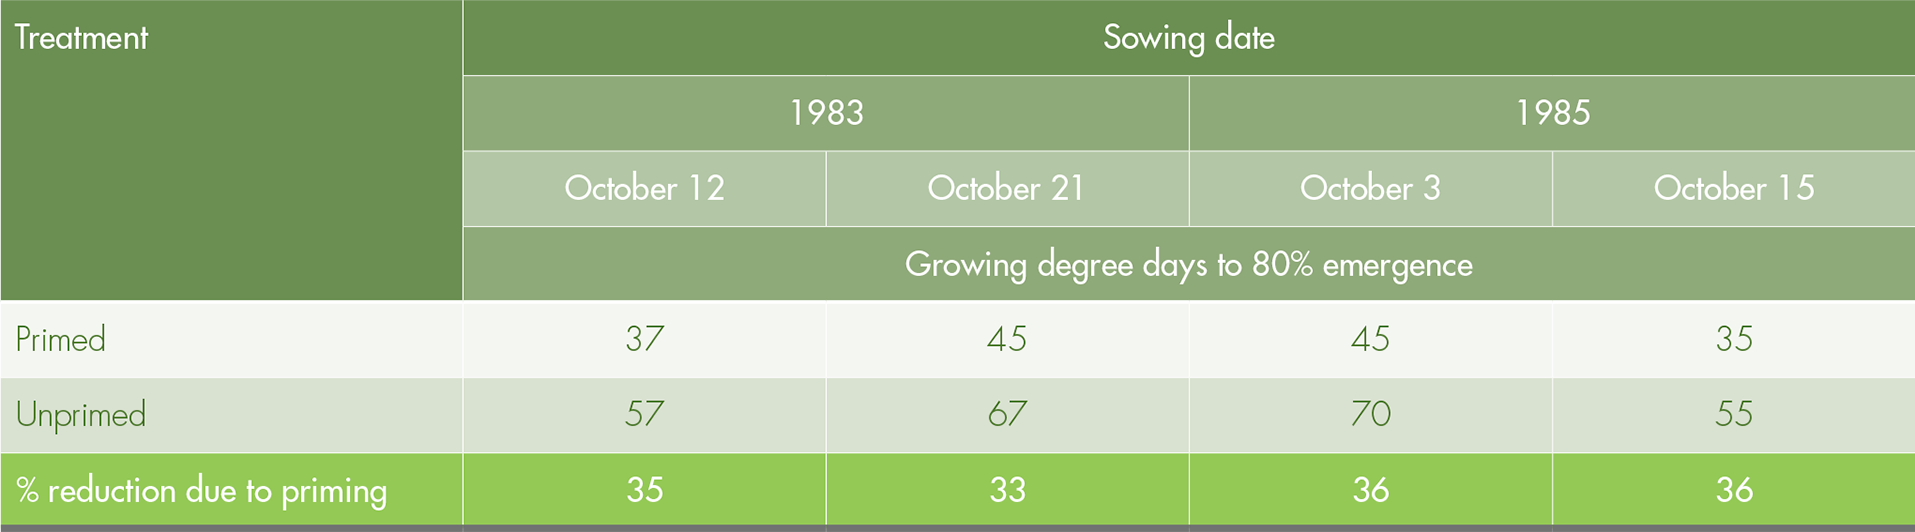 Growing degree days of primed and unprimed seeds in two growing seasons.